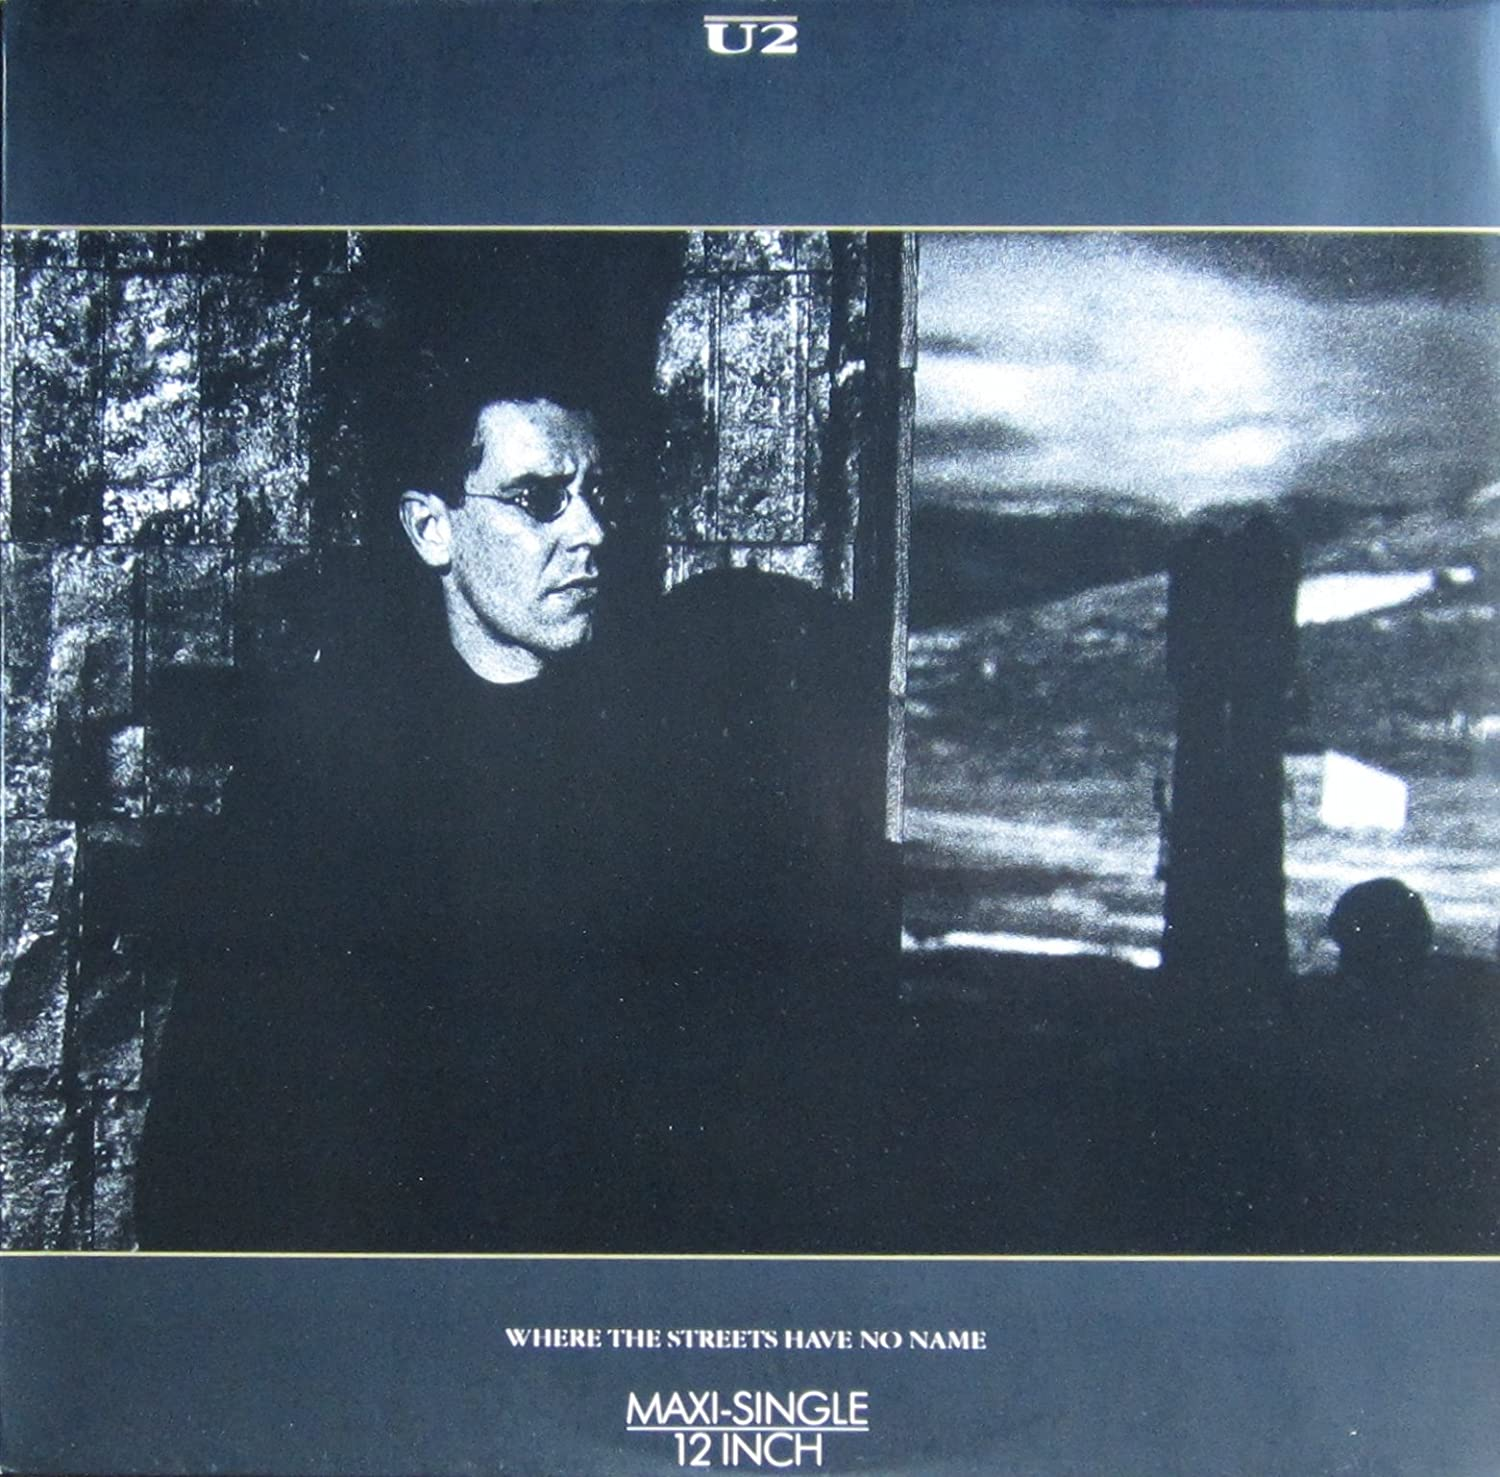 U2 - Where the streets have no name / Vinyl Maxi Single